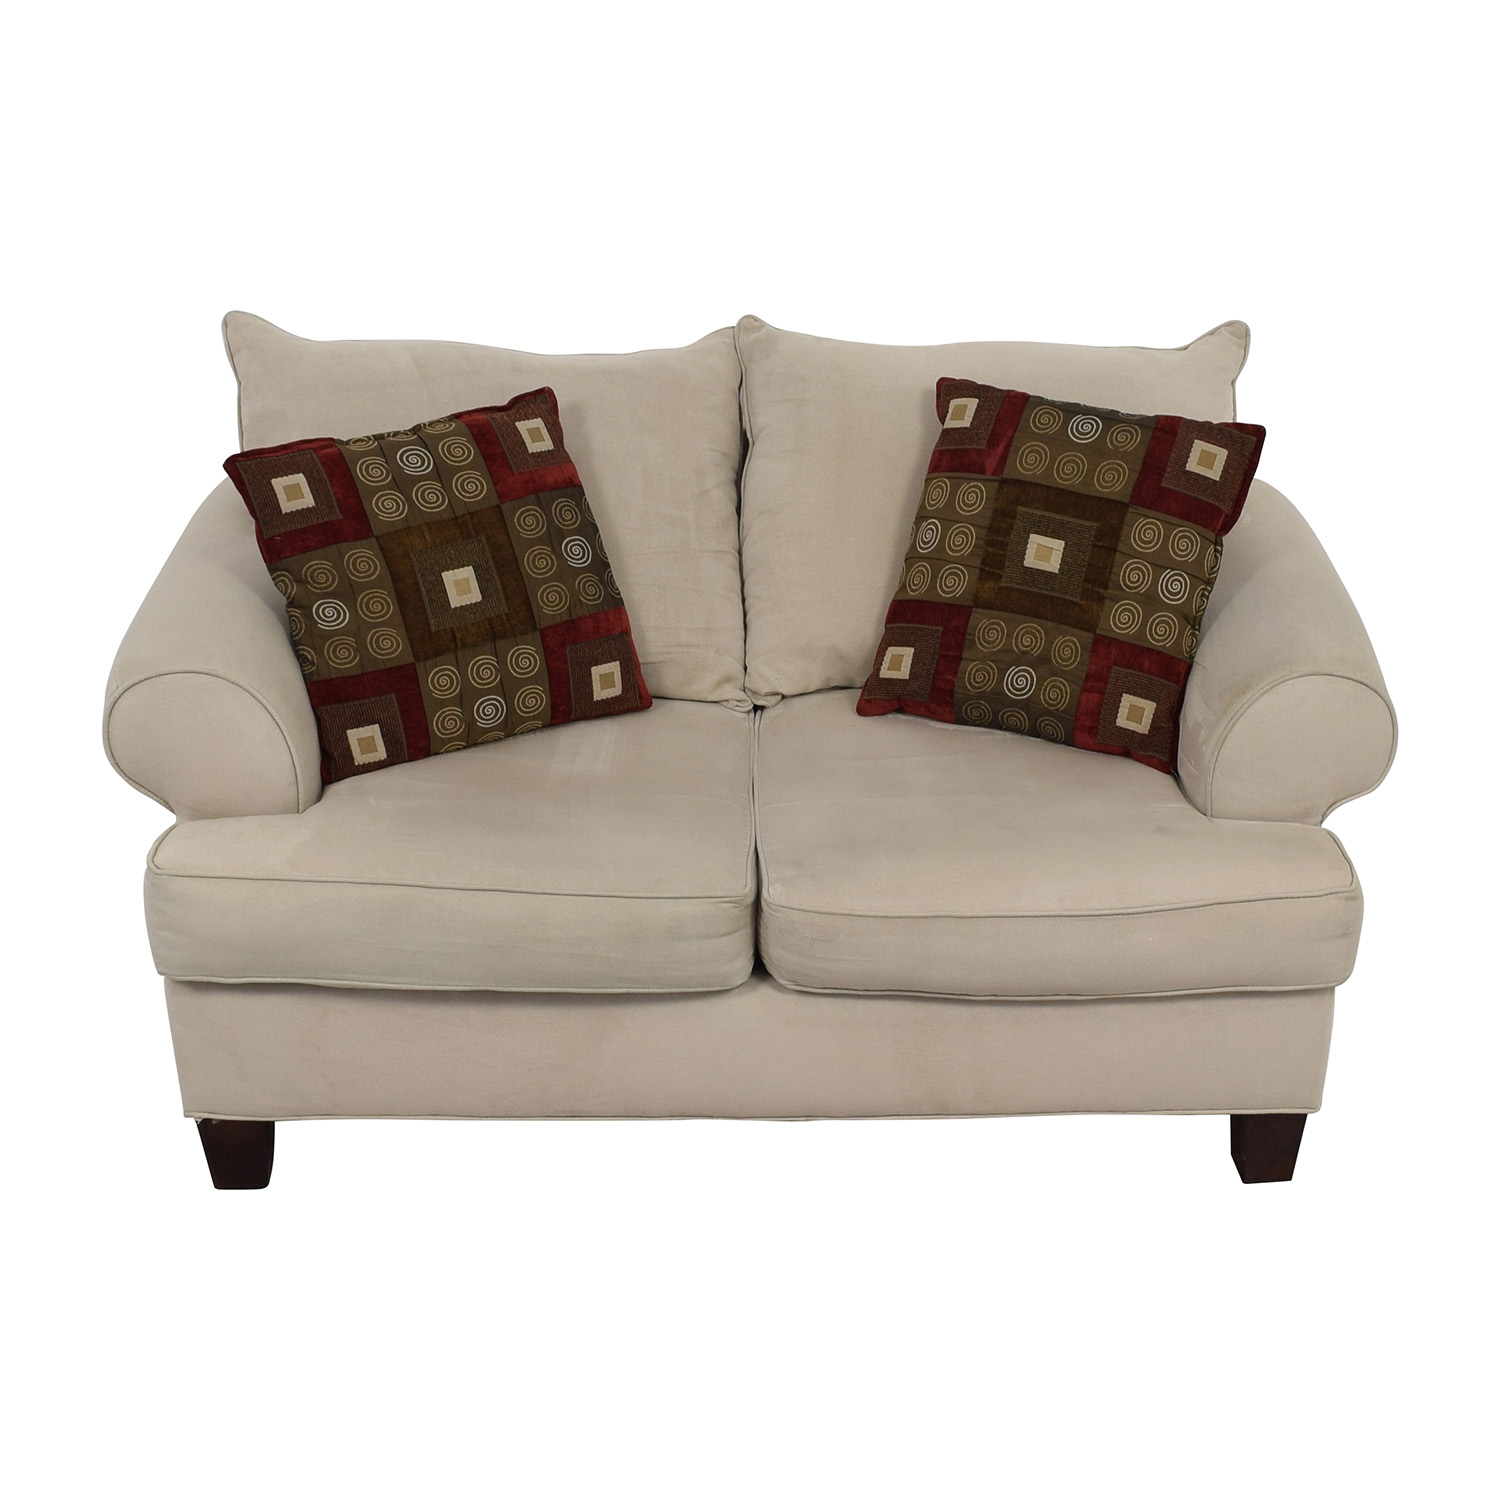 shop Bobs Discount Furniture Cream Love Seat Bobs Discount Furniture Loveseats